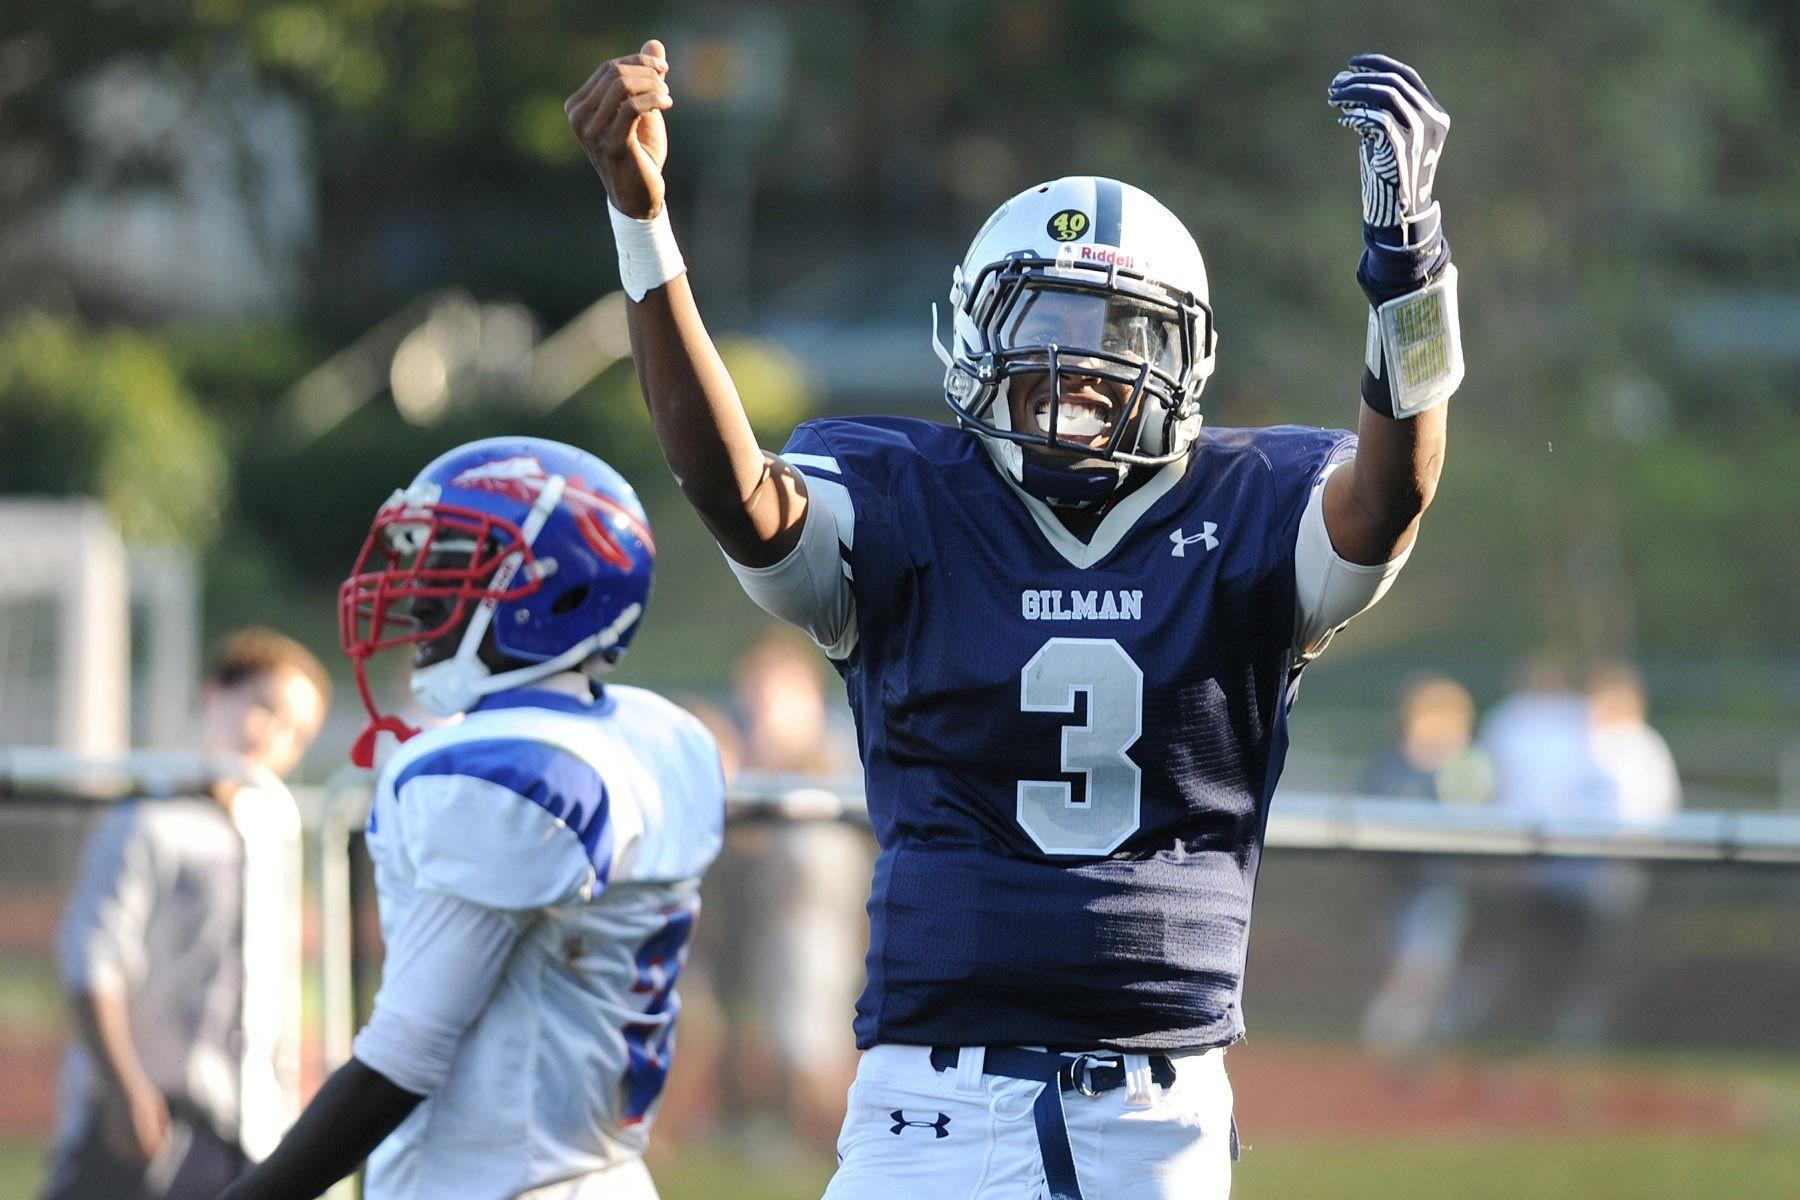 Gilman quarterback Kai Locksley celebrates a long run for a touchdown late in the second quarter during a game against Anacostia.